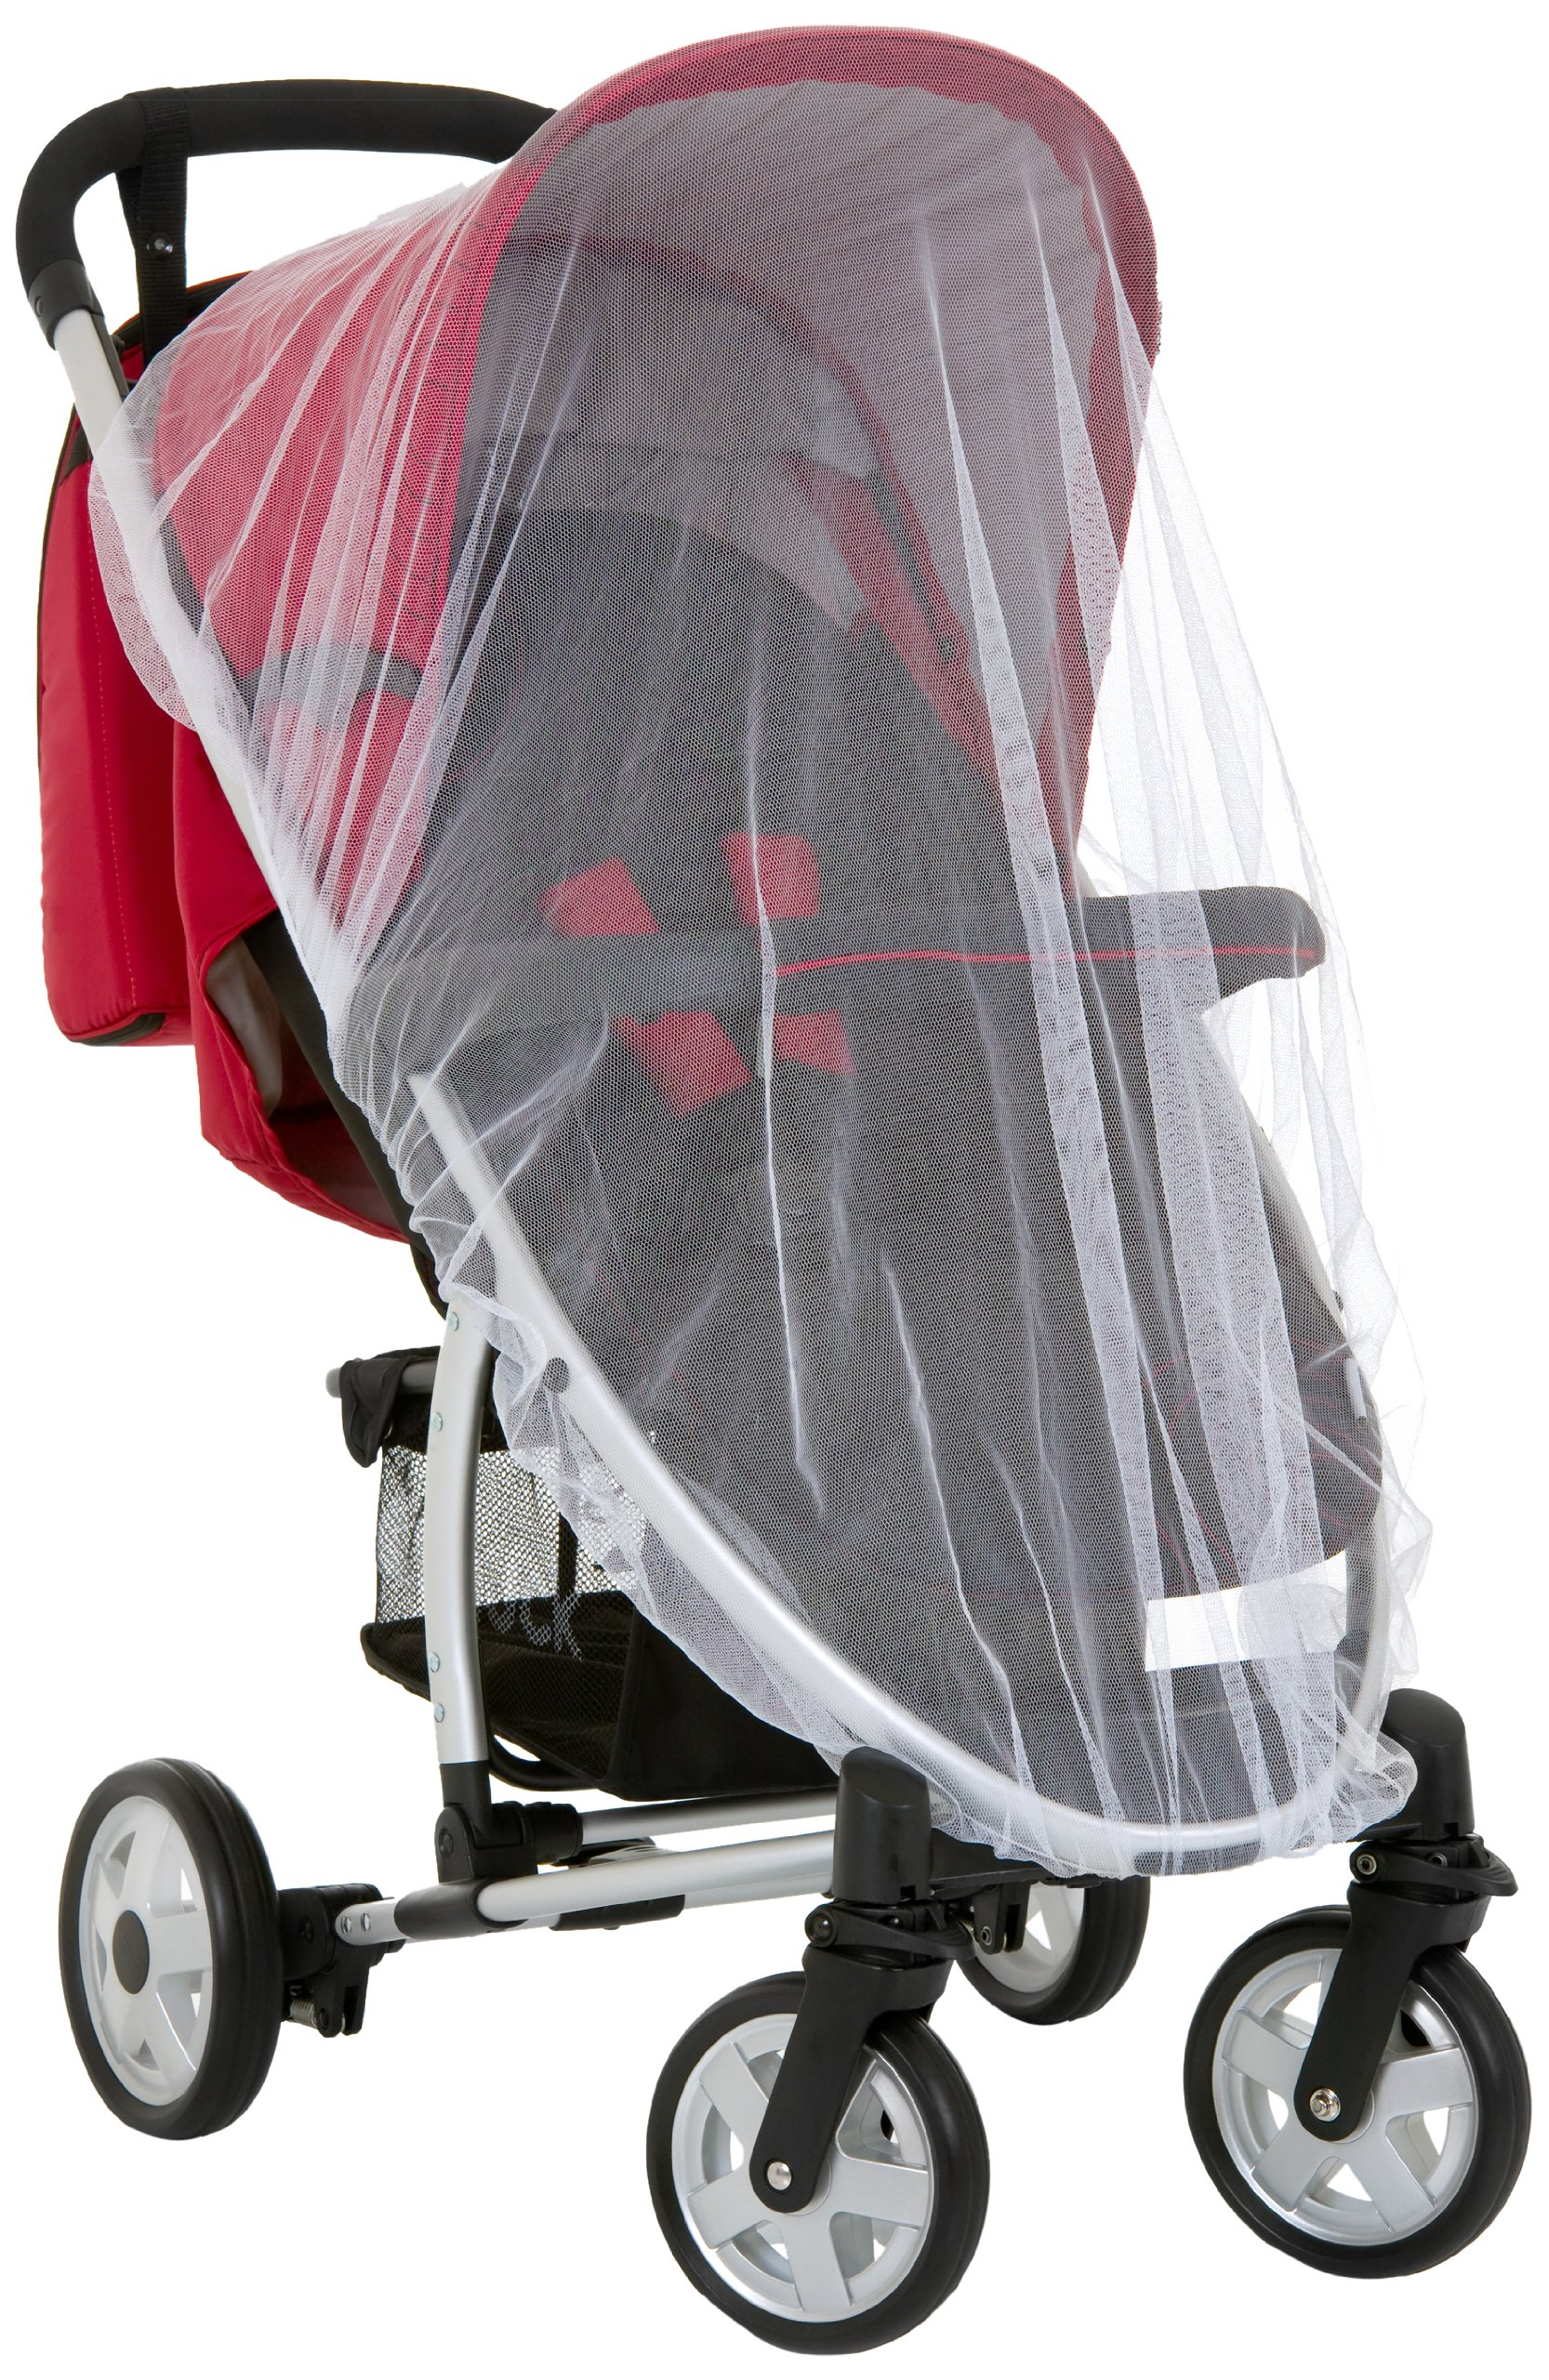 Hauck Protect Me Mosquito Net by Babyland (Image #2)